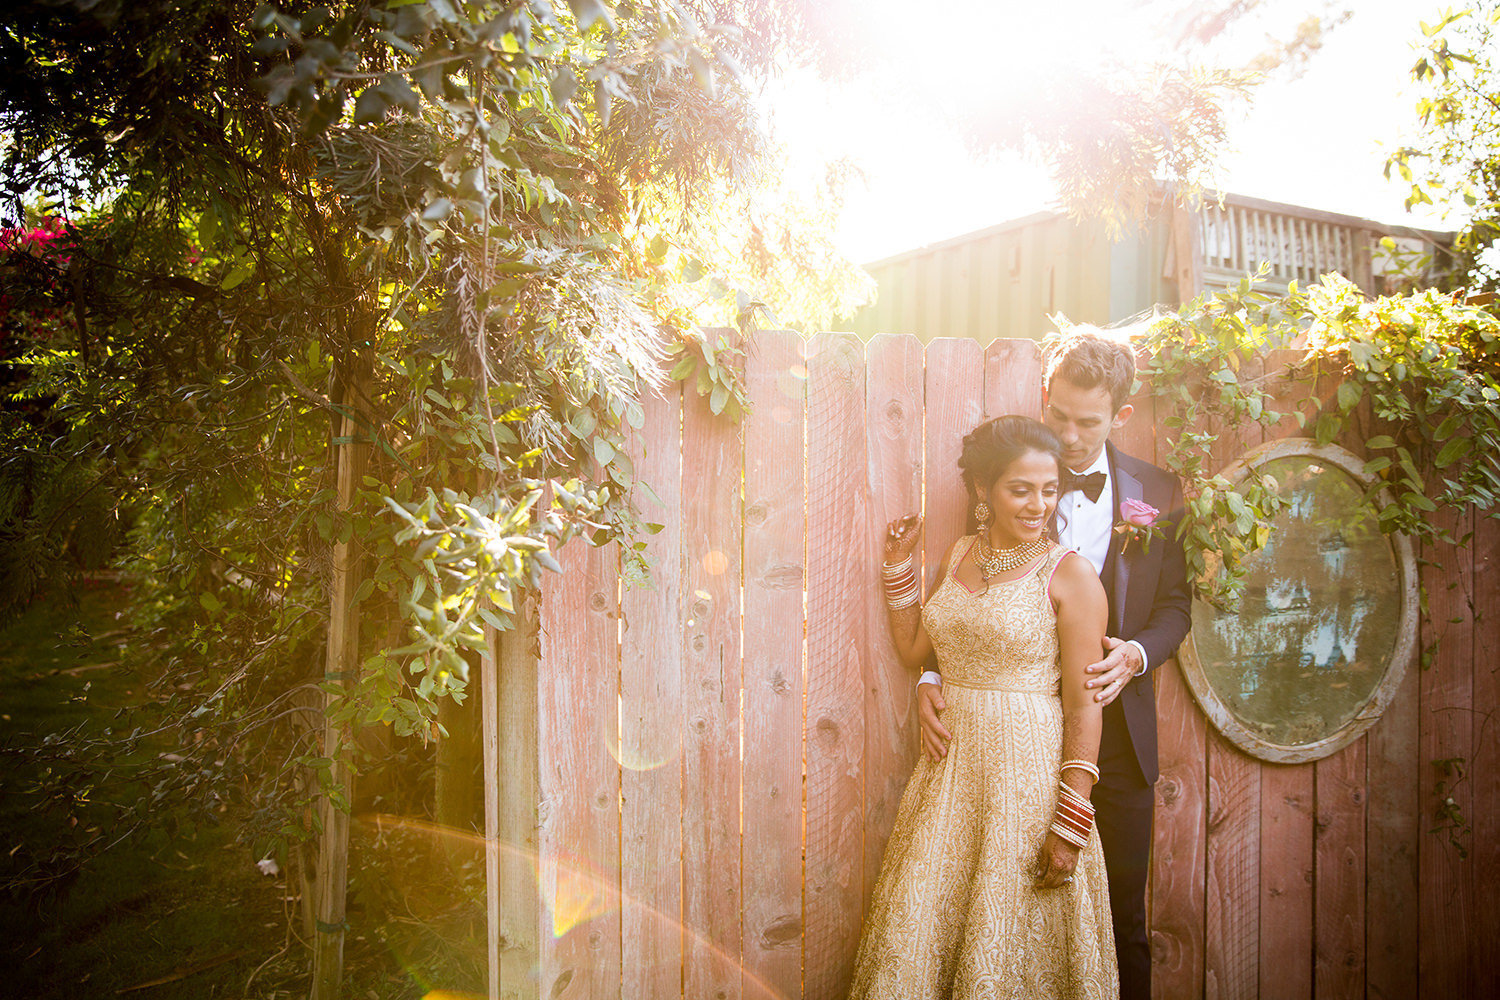 Romantic portrait with lens flare in front of an old fence.